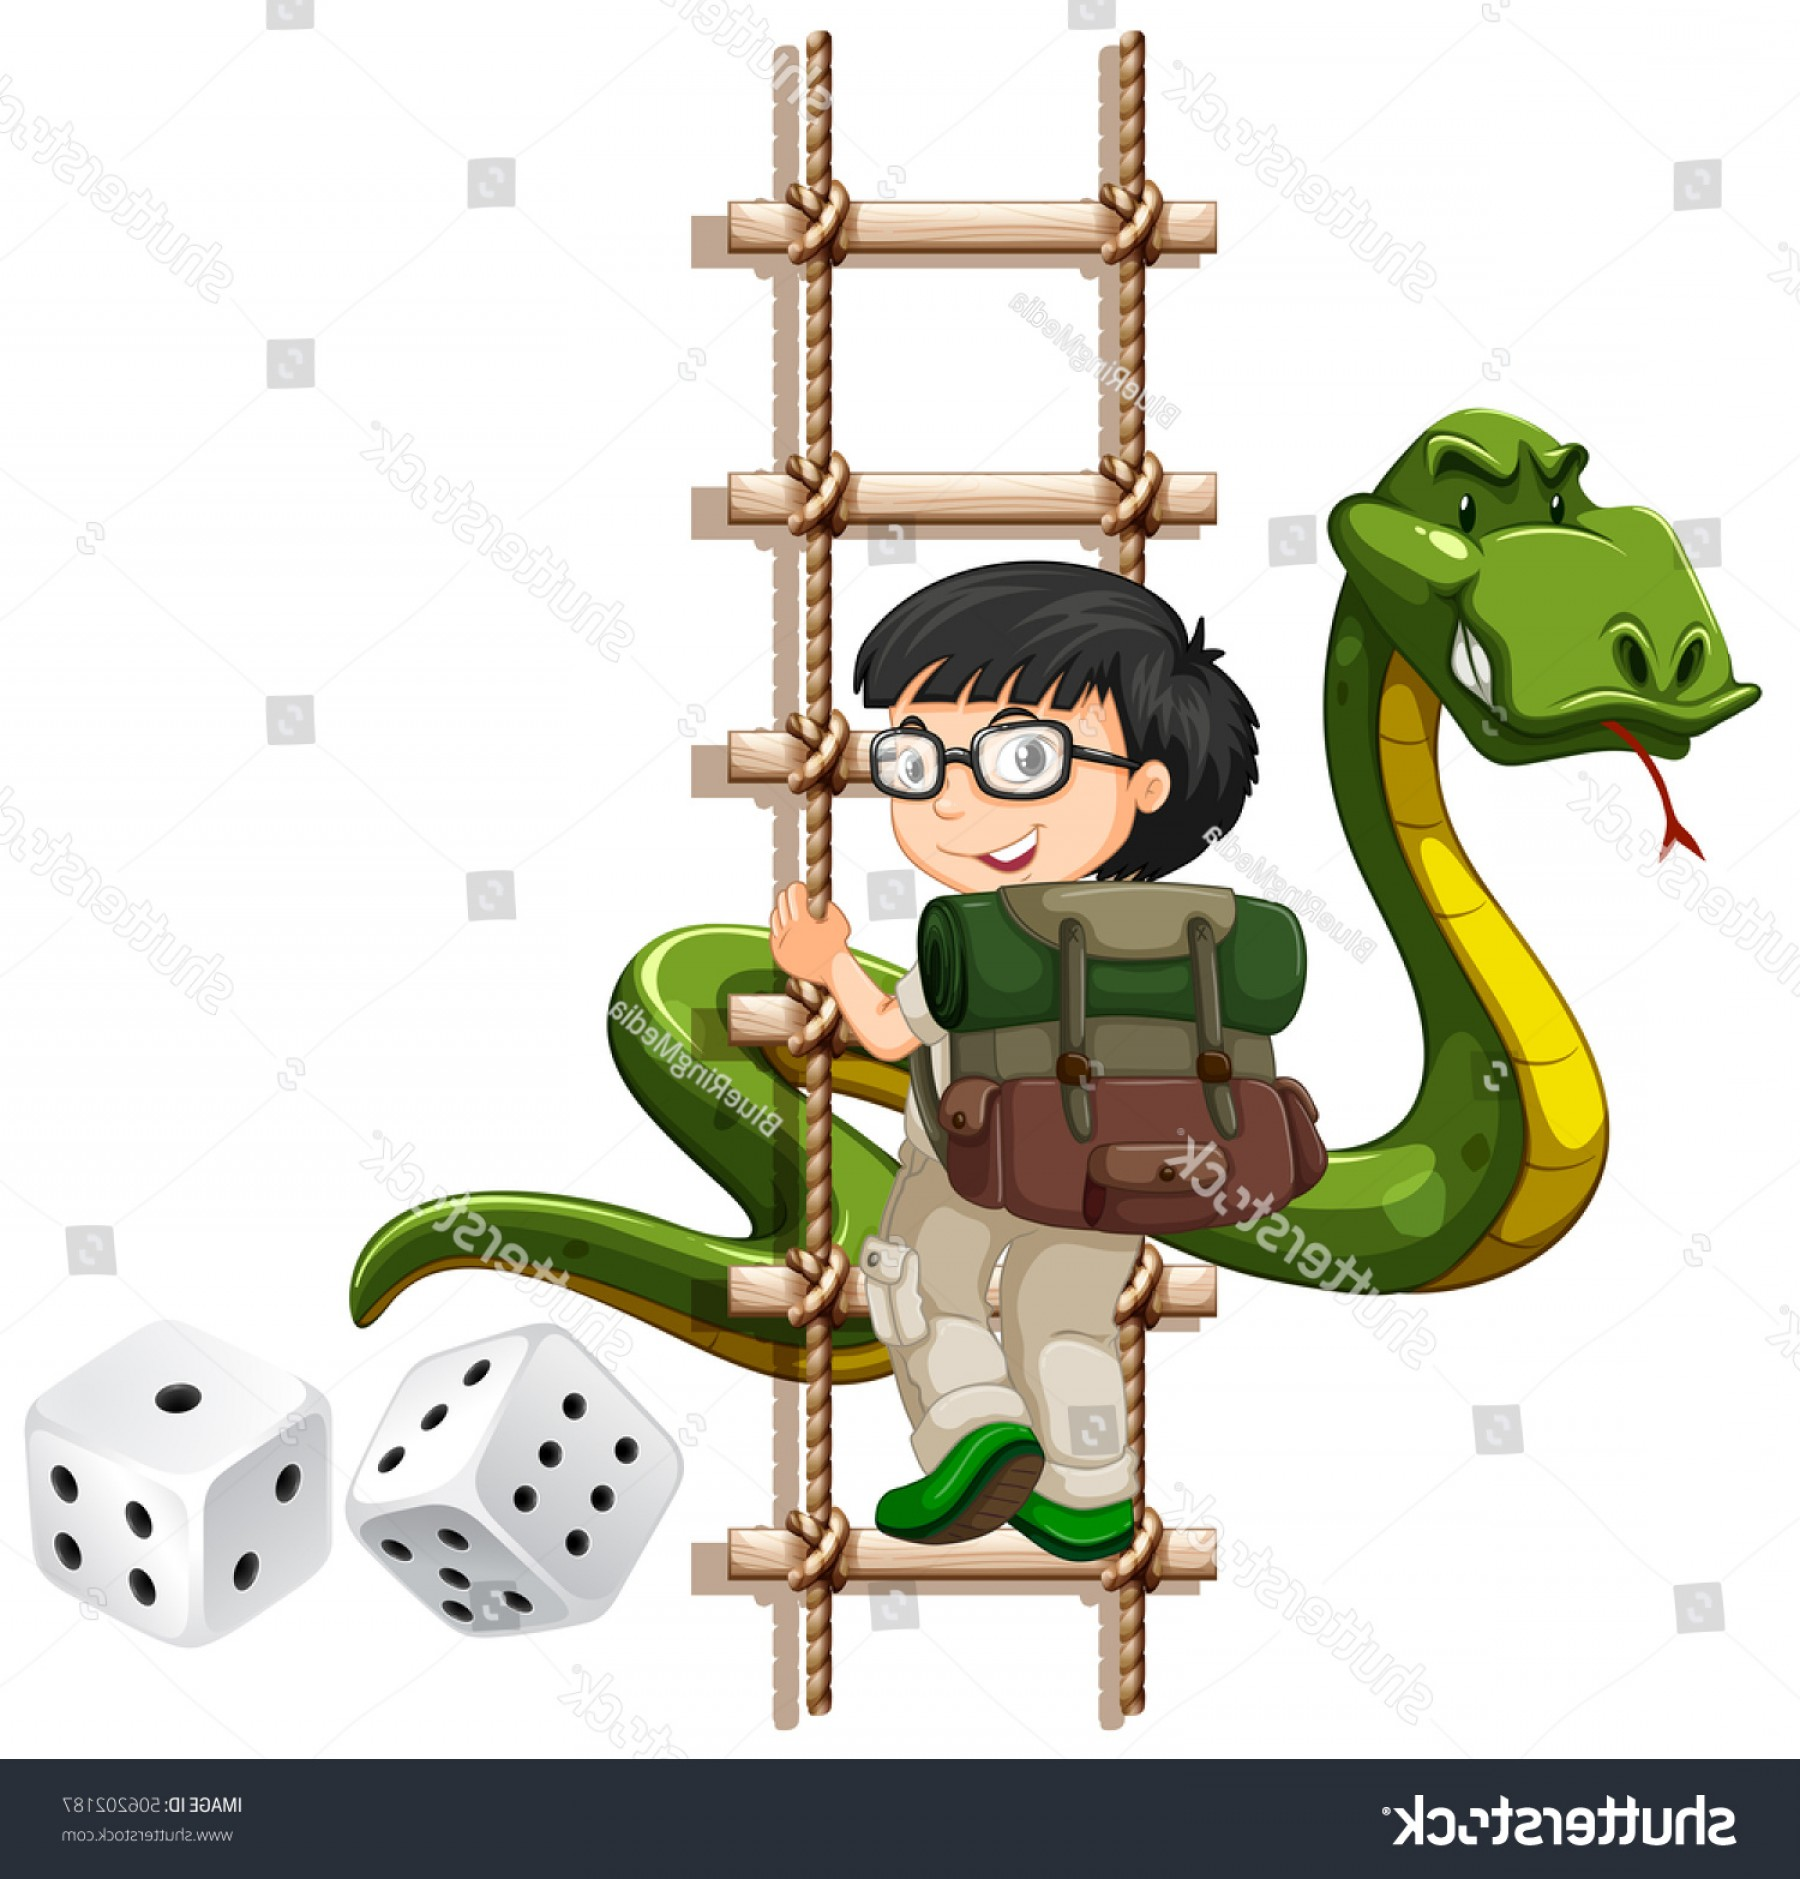 Climbing Army Vector: Boy Snake Climbing Ladder Illustration